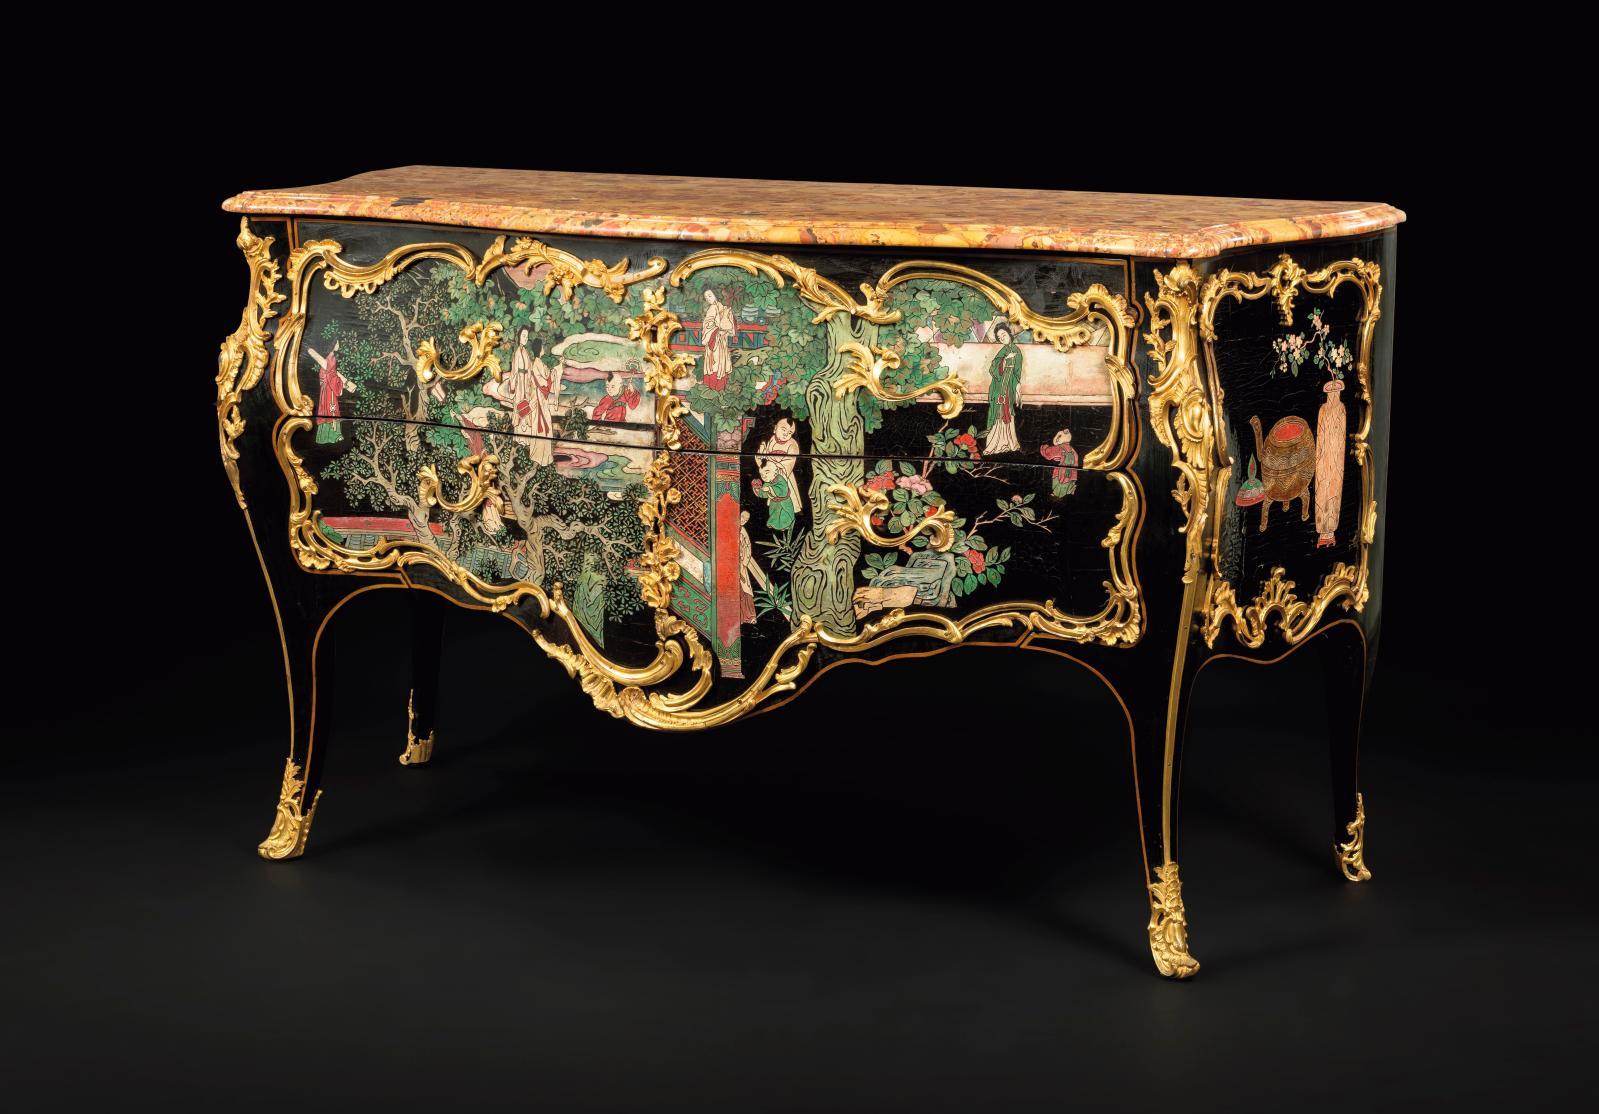 Coromandel lacquer commode with darkened wood frames, sinuous-formed façade, and sides and two drawers, decorated with palace scenes and u